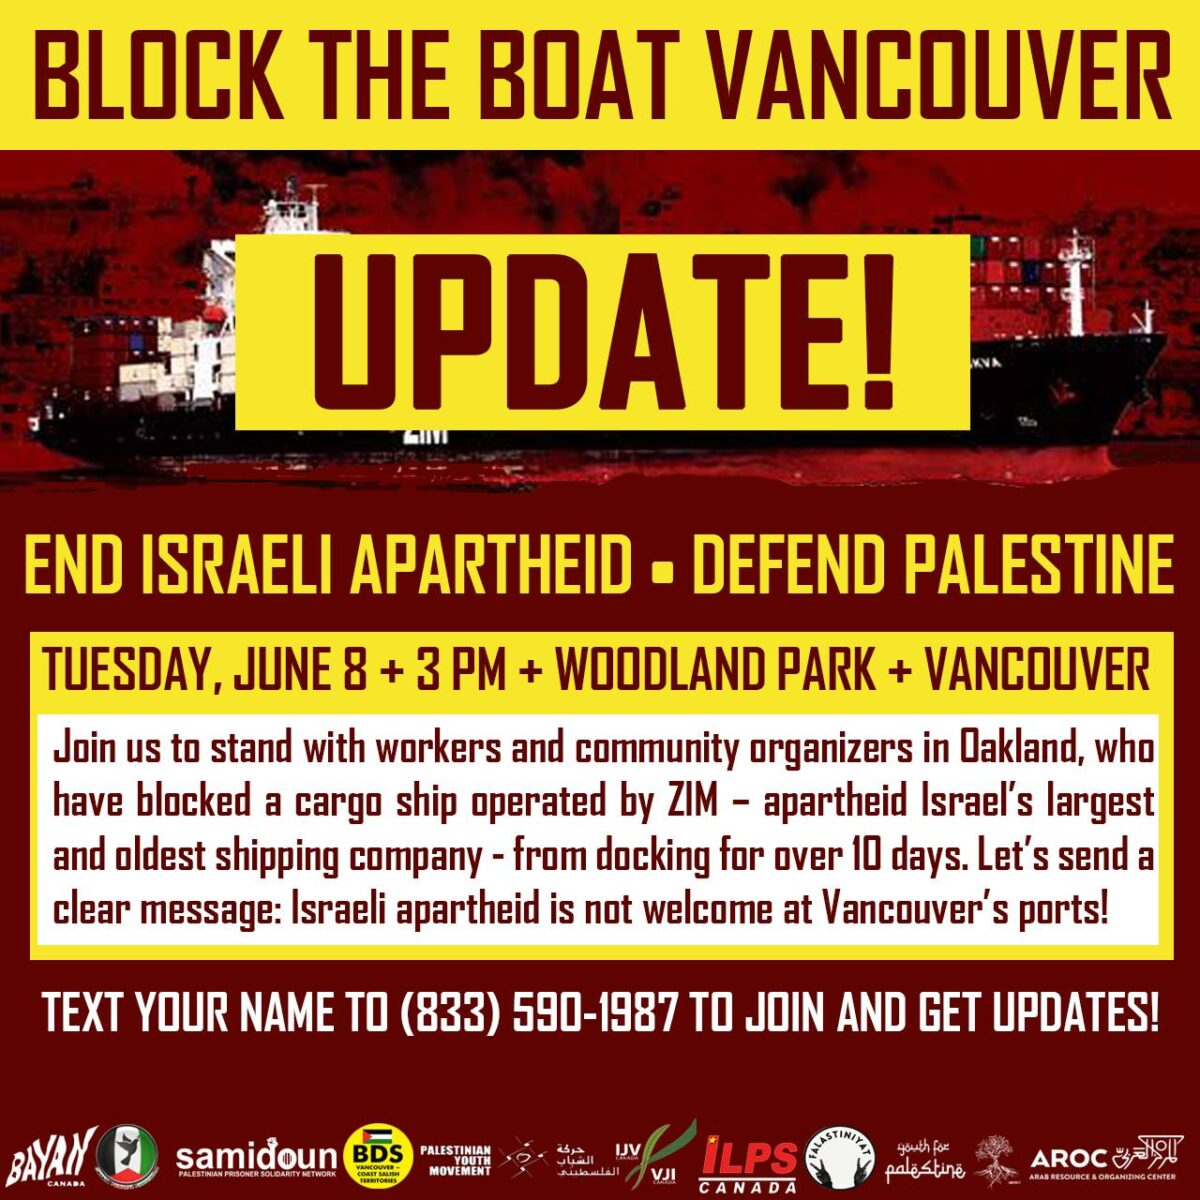 Block the Boat Vancouver